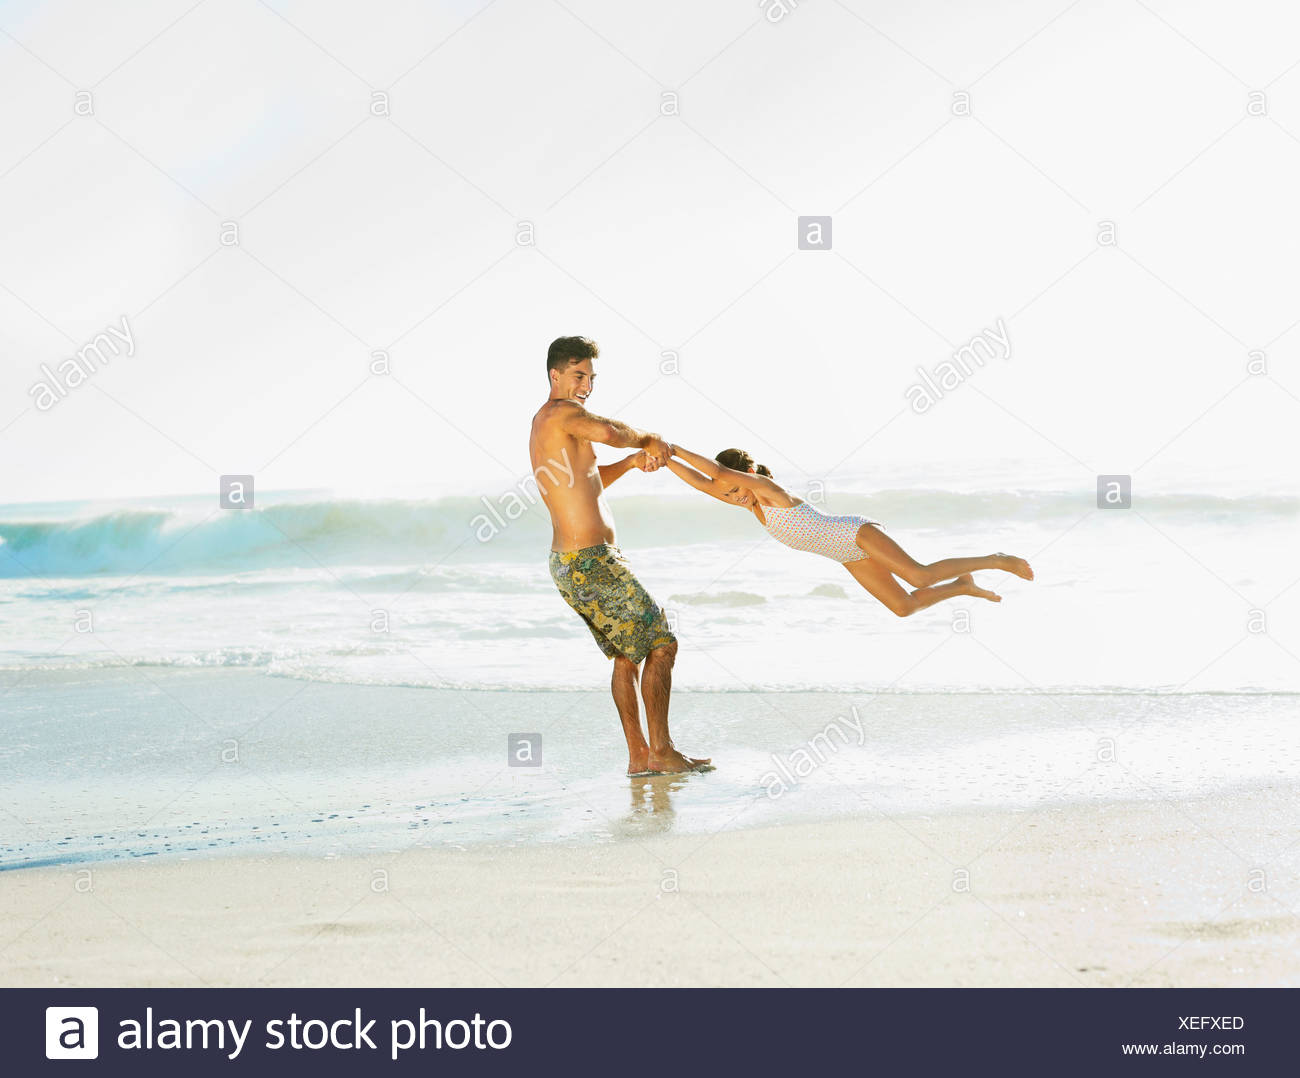 Father swinging daughter on beach - Stock Image